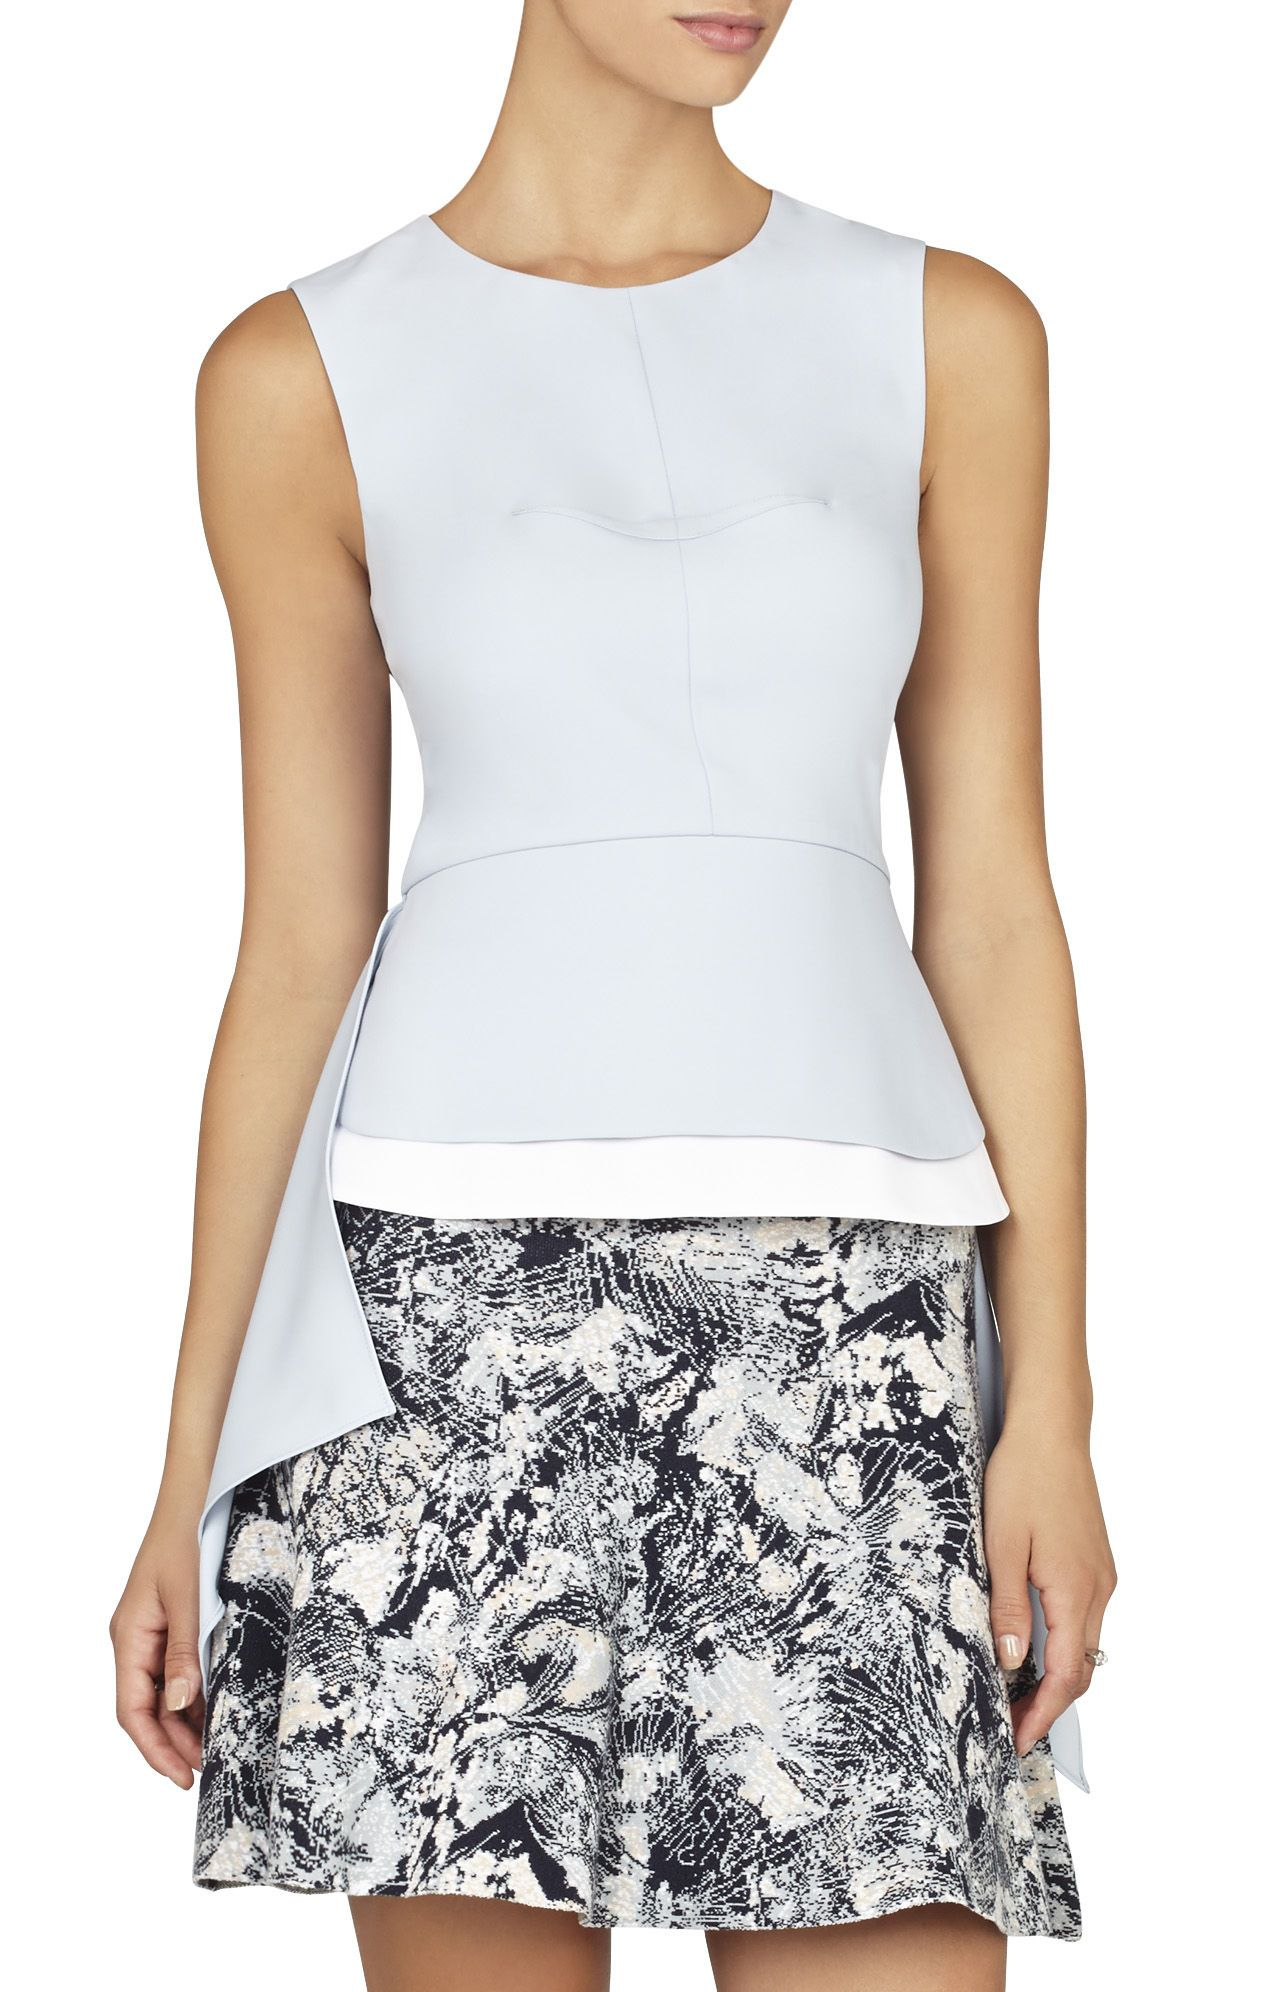 ceb3b2ecf763 BCBGMAXAZRIA Ariana High-Low Sleeveless Top | BCBG.com | Shorts and ...